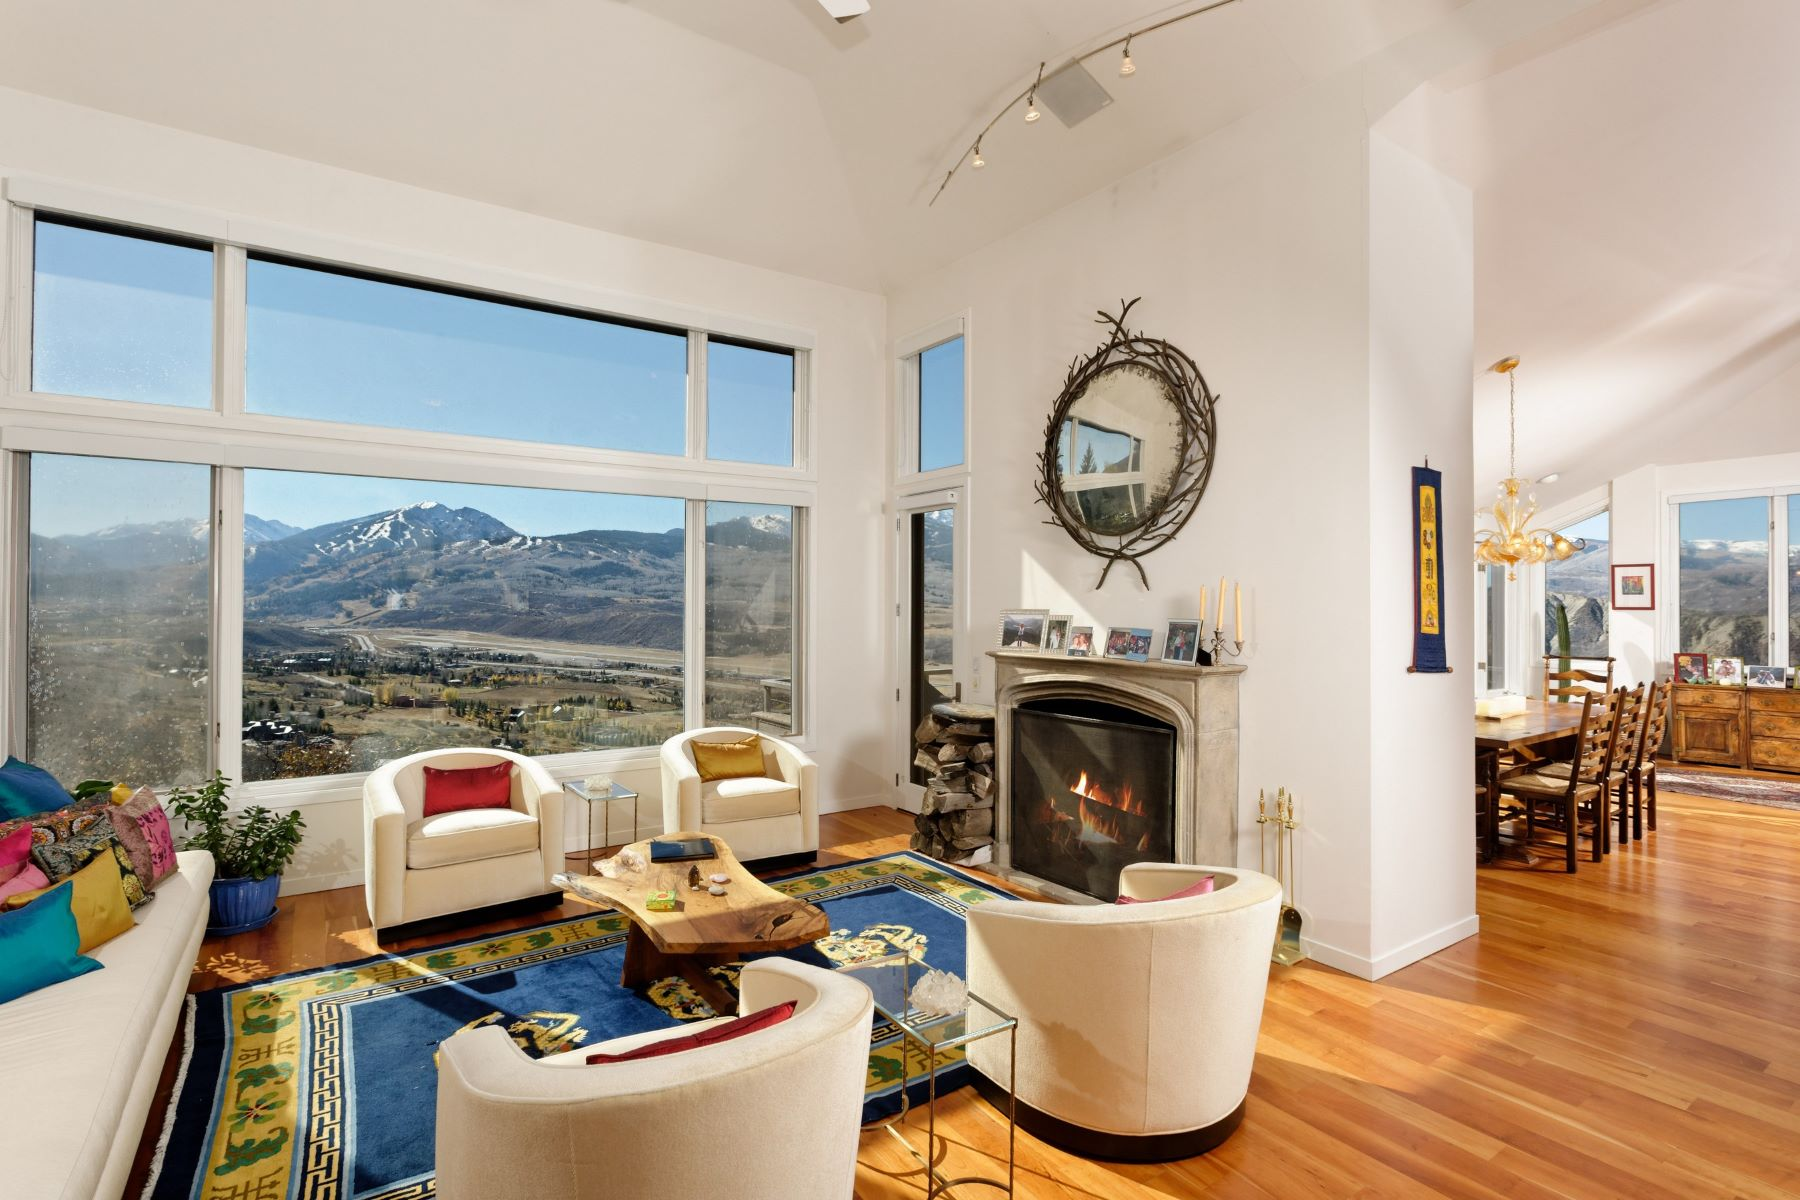 Single Family Home for Sale at Starwood Stunner 284 Stewart Drive McLain Flats, Aspen, Colorado, 81611 United States